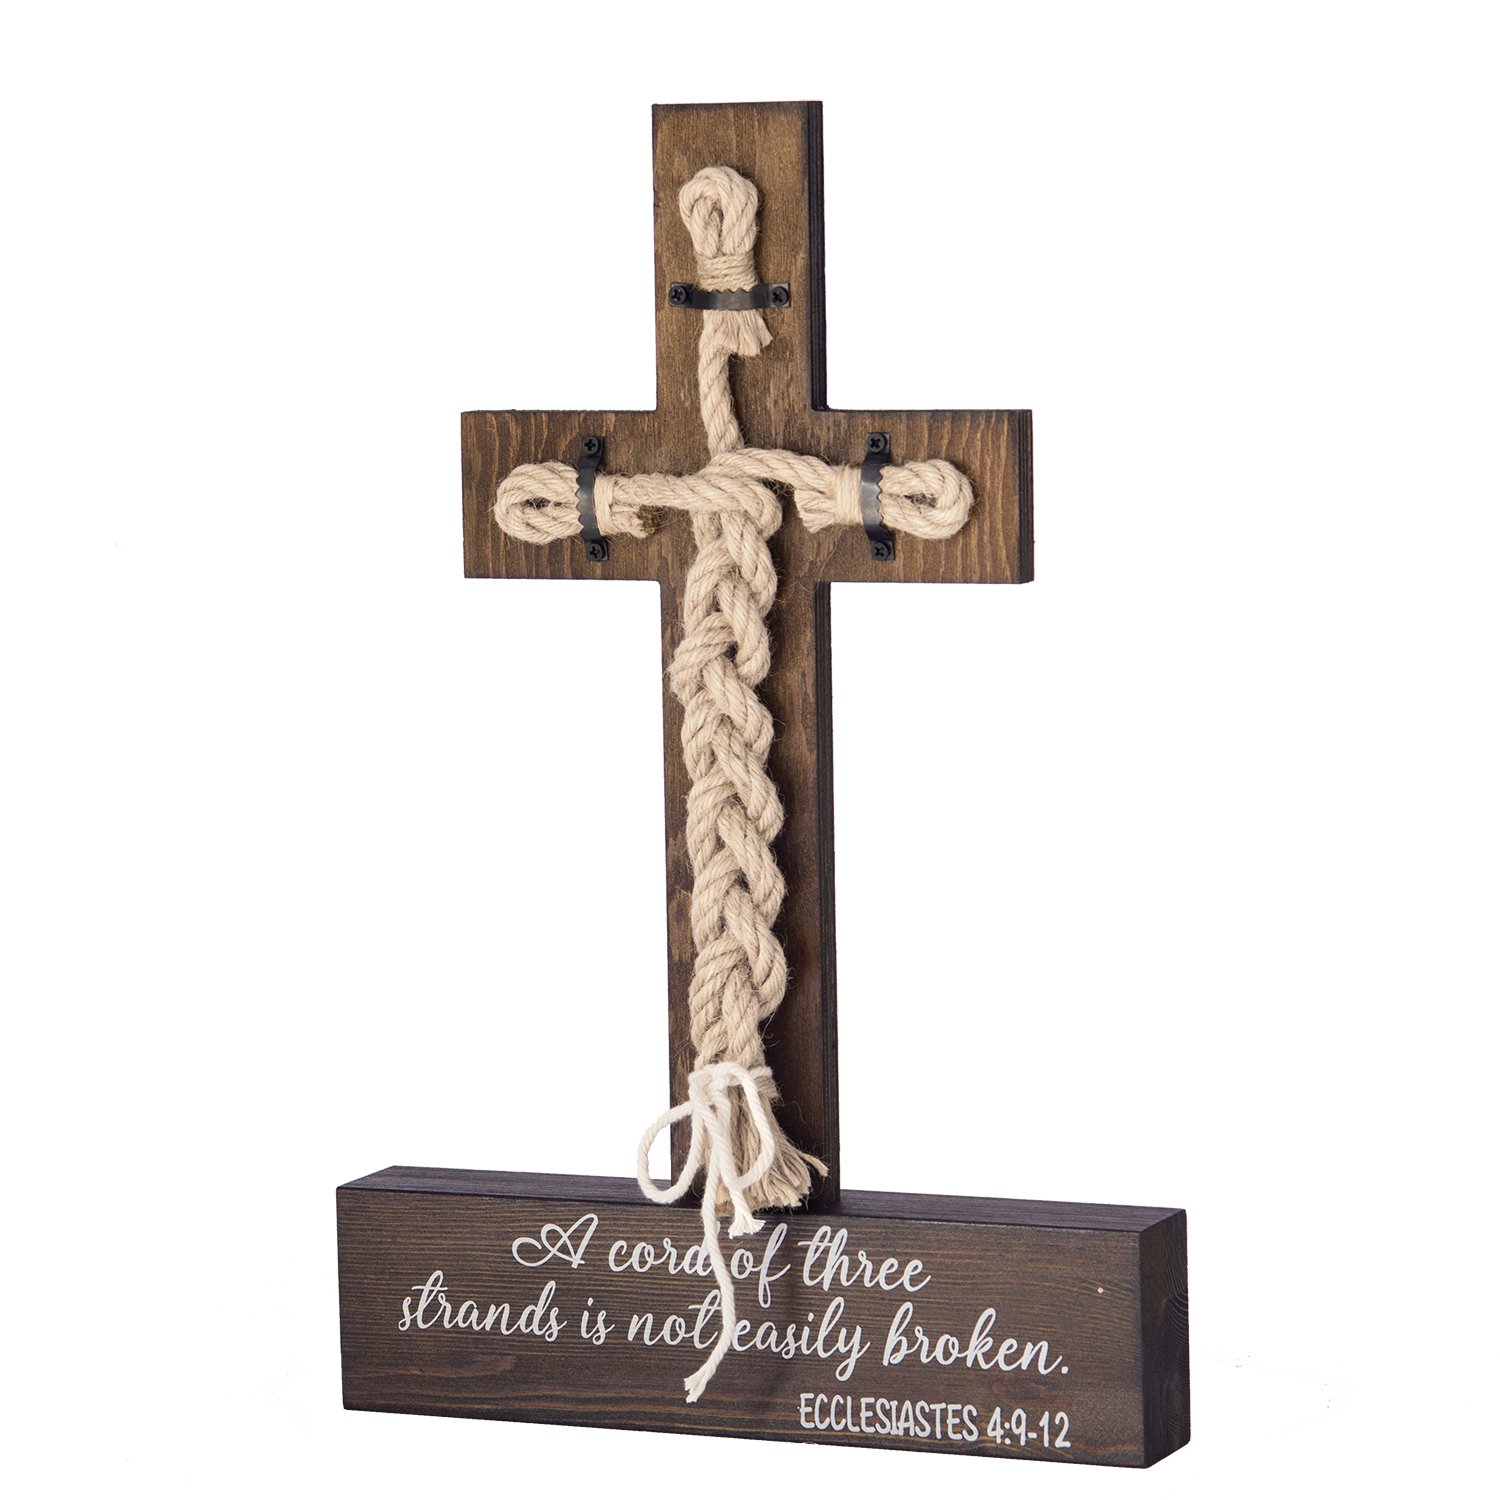 Ling's moment A Cord of Three Strands Wedding Sign - Bible Cross Wedding Unity Sign -Tie The Knot Ceremony - Strand of Three Cords Sign Ecclesiastes 4:9-12